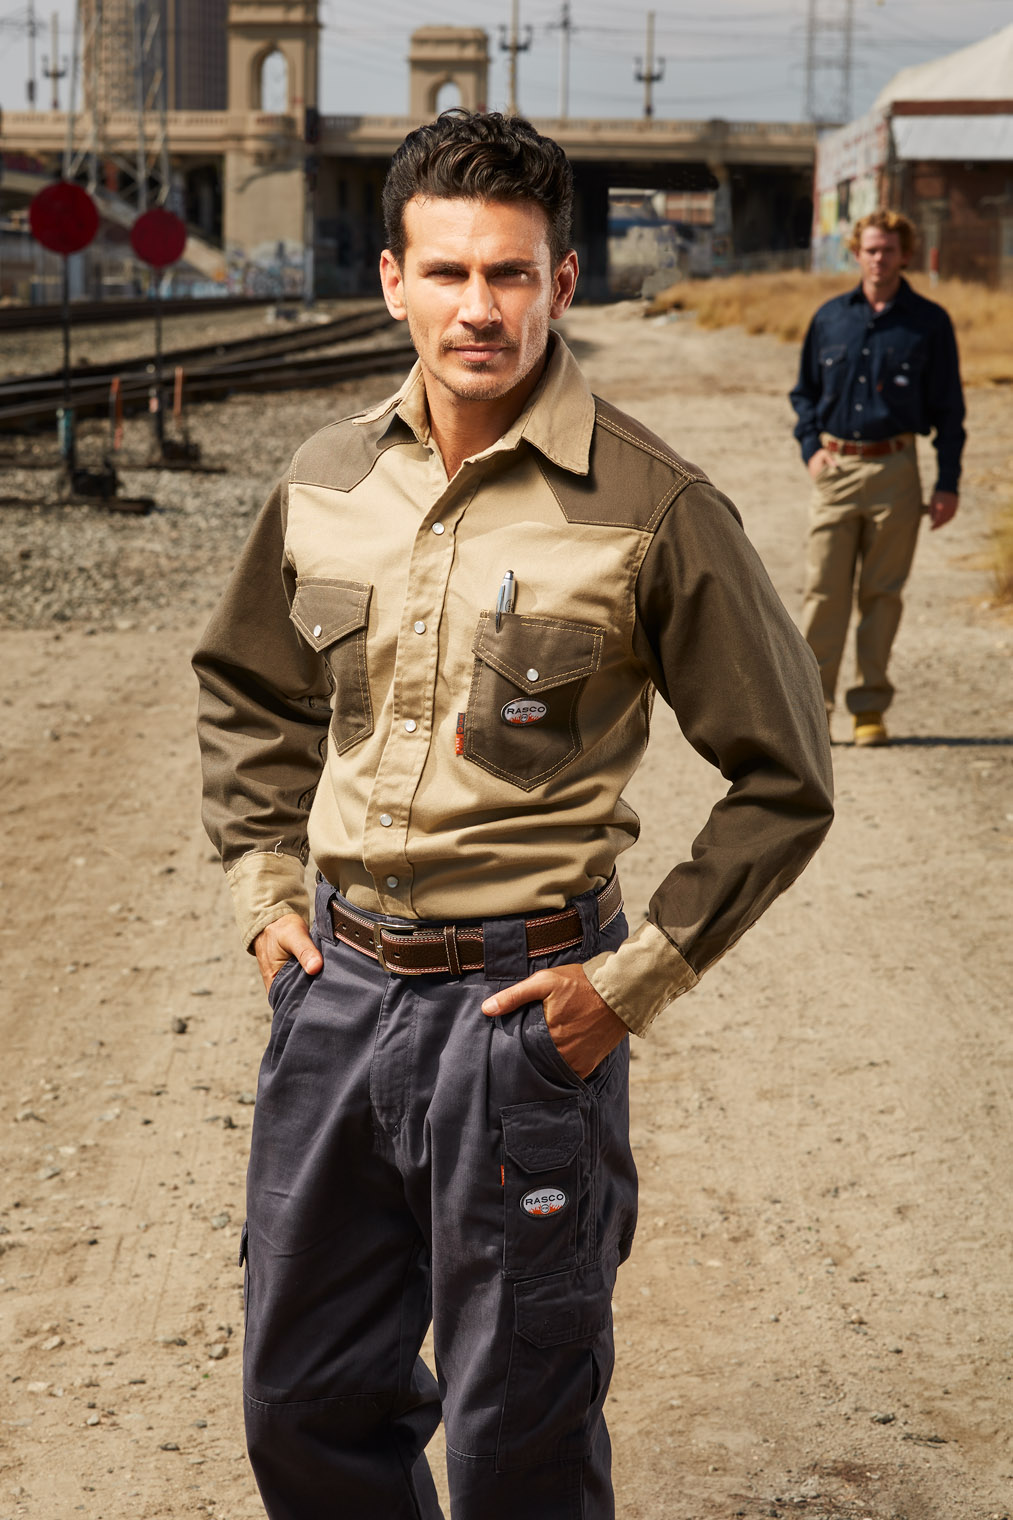 tough guy on the way to hard work in cool work shirt